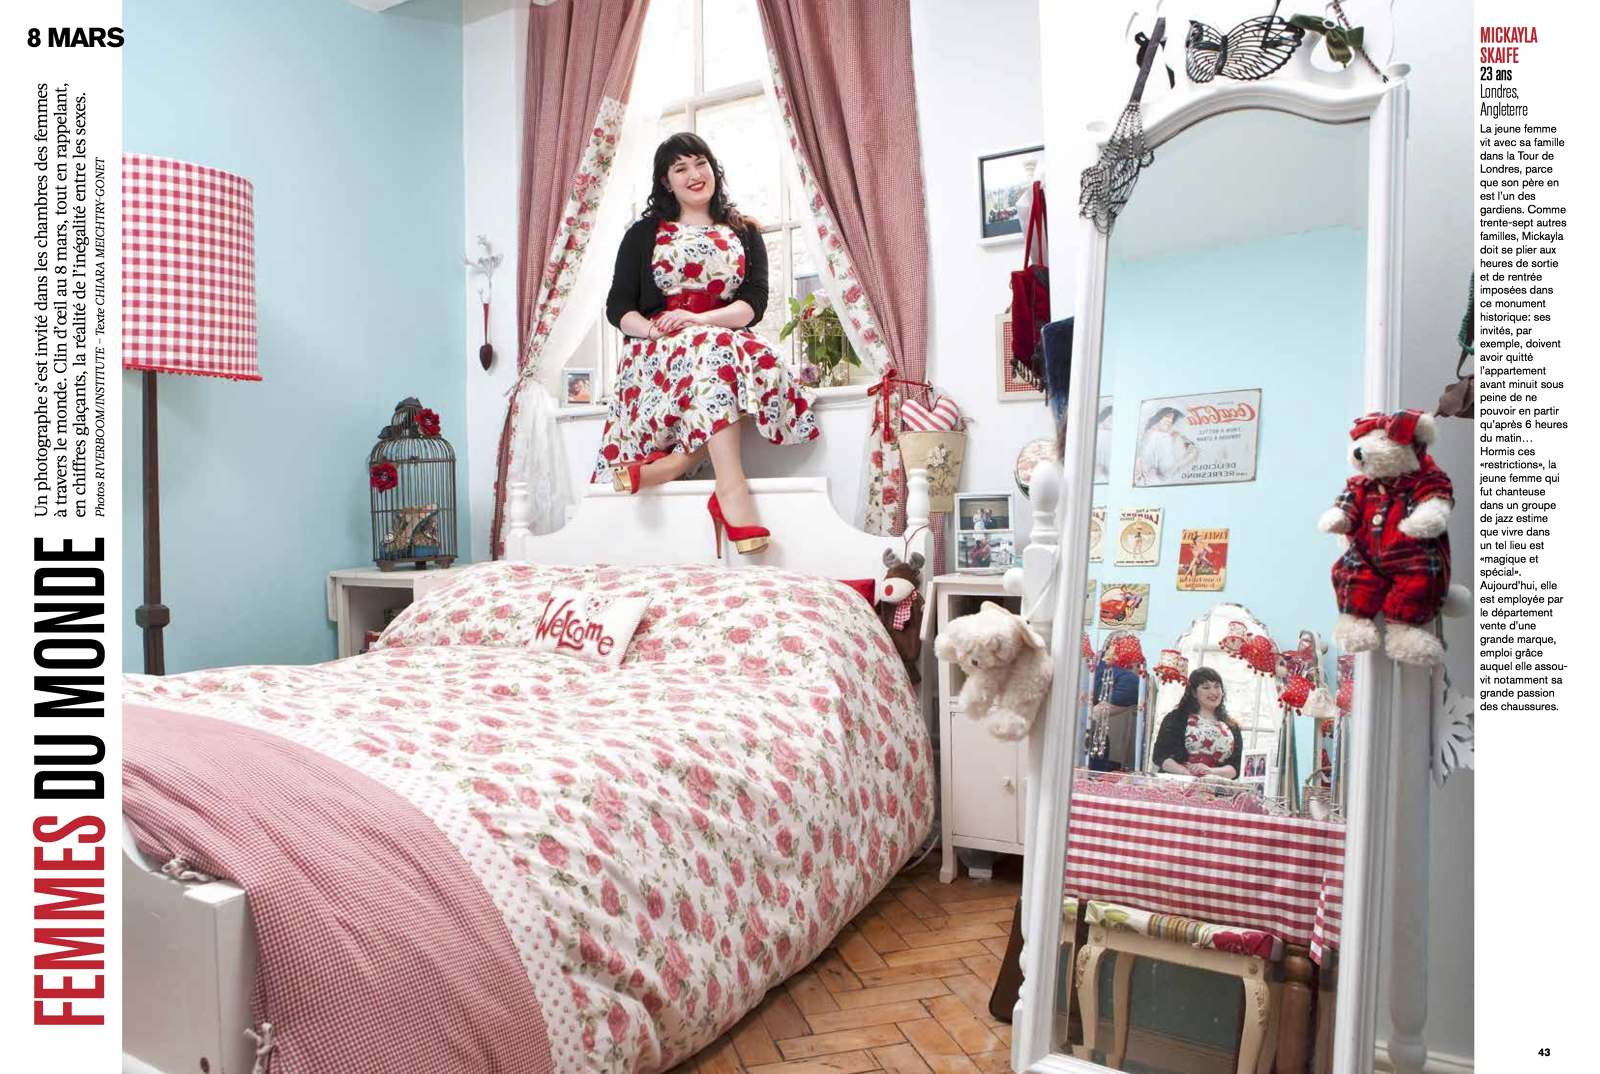 tearsheet: Riverboom\'s \'Girls\' Bedrooms: Mirrors and Windows ...